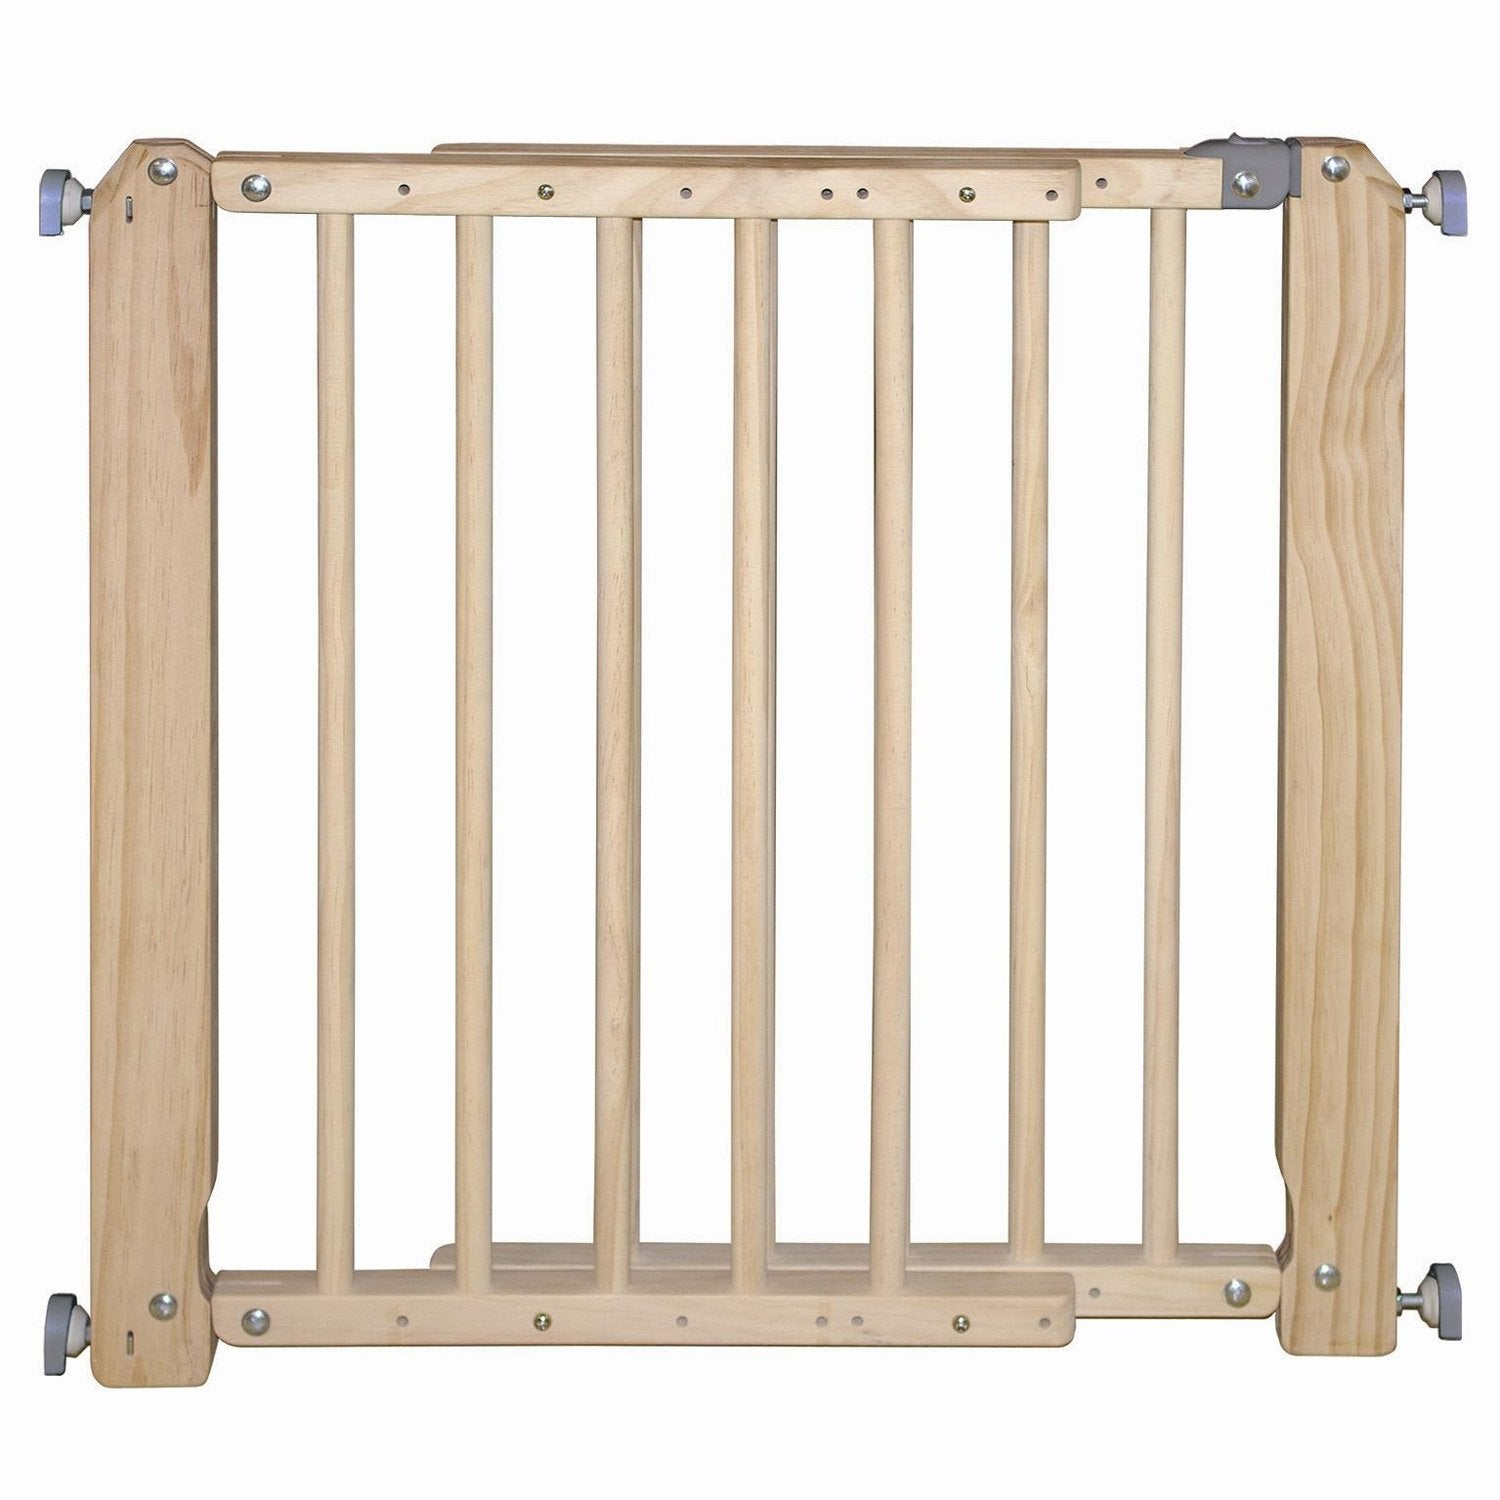 Barri re de s curit enfant bois cm cm for Barriere de securite pour escalier helicoidale